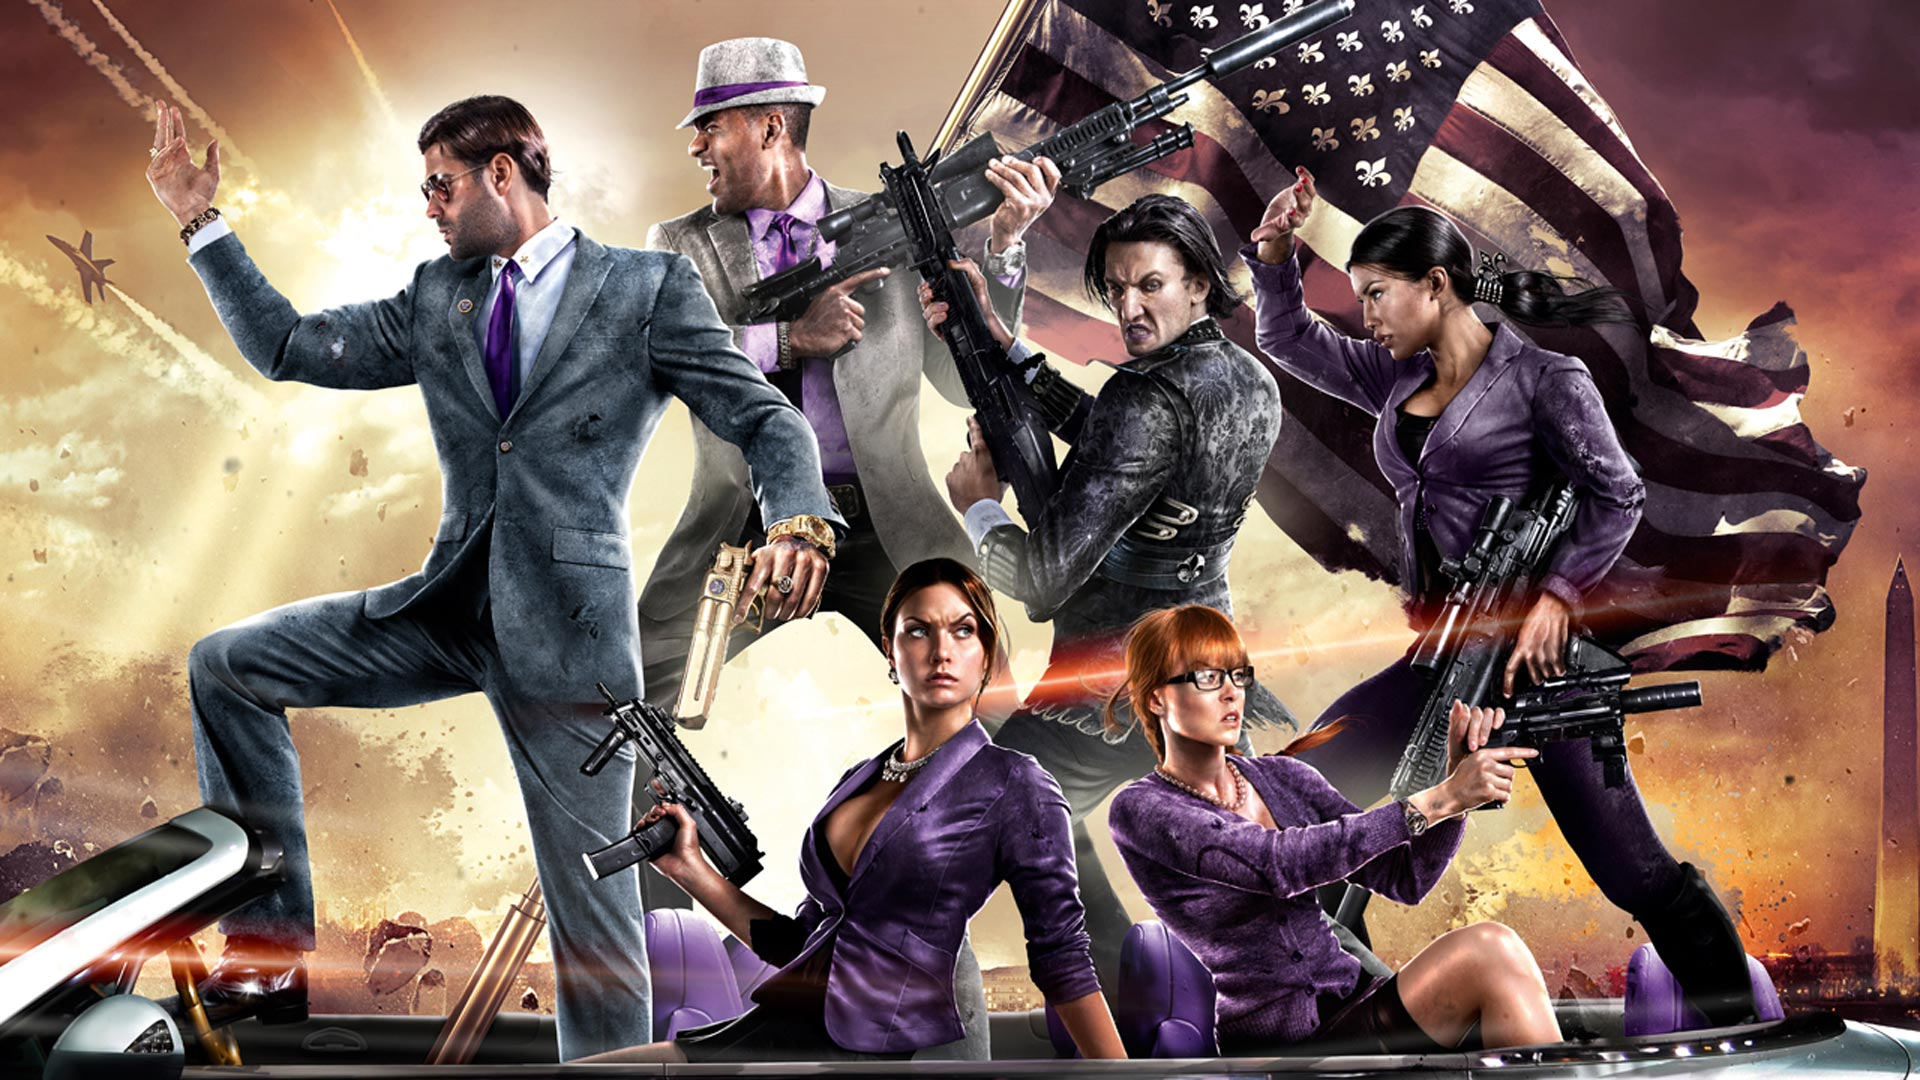 Saints Row 2020 Screenshot